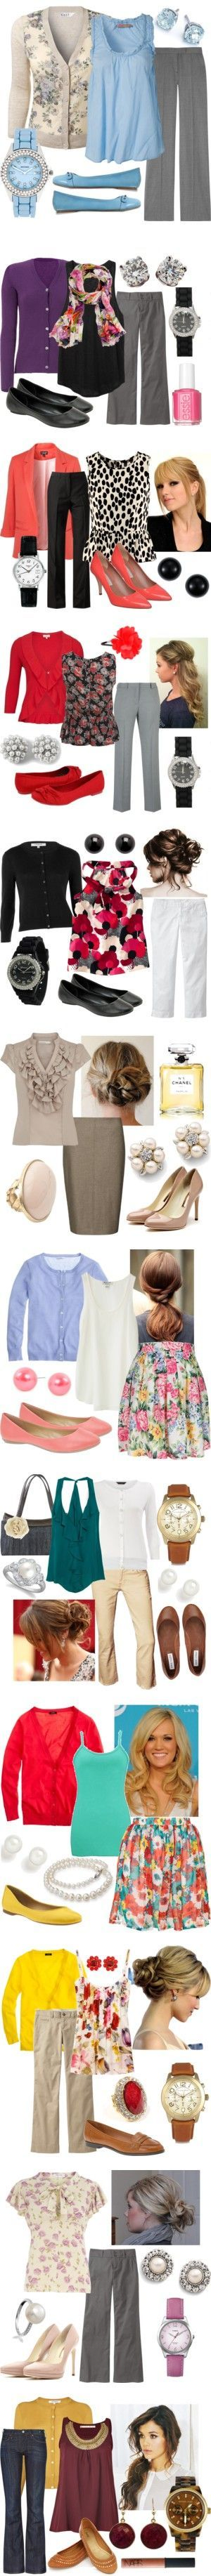 These outfits would look great to wear to school!! They each have a lovely pop of color and sense of comfort to them.